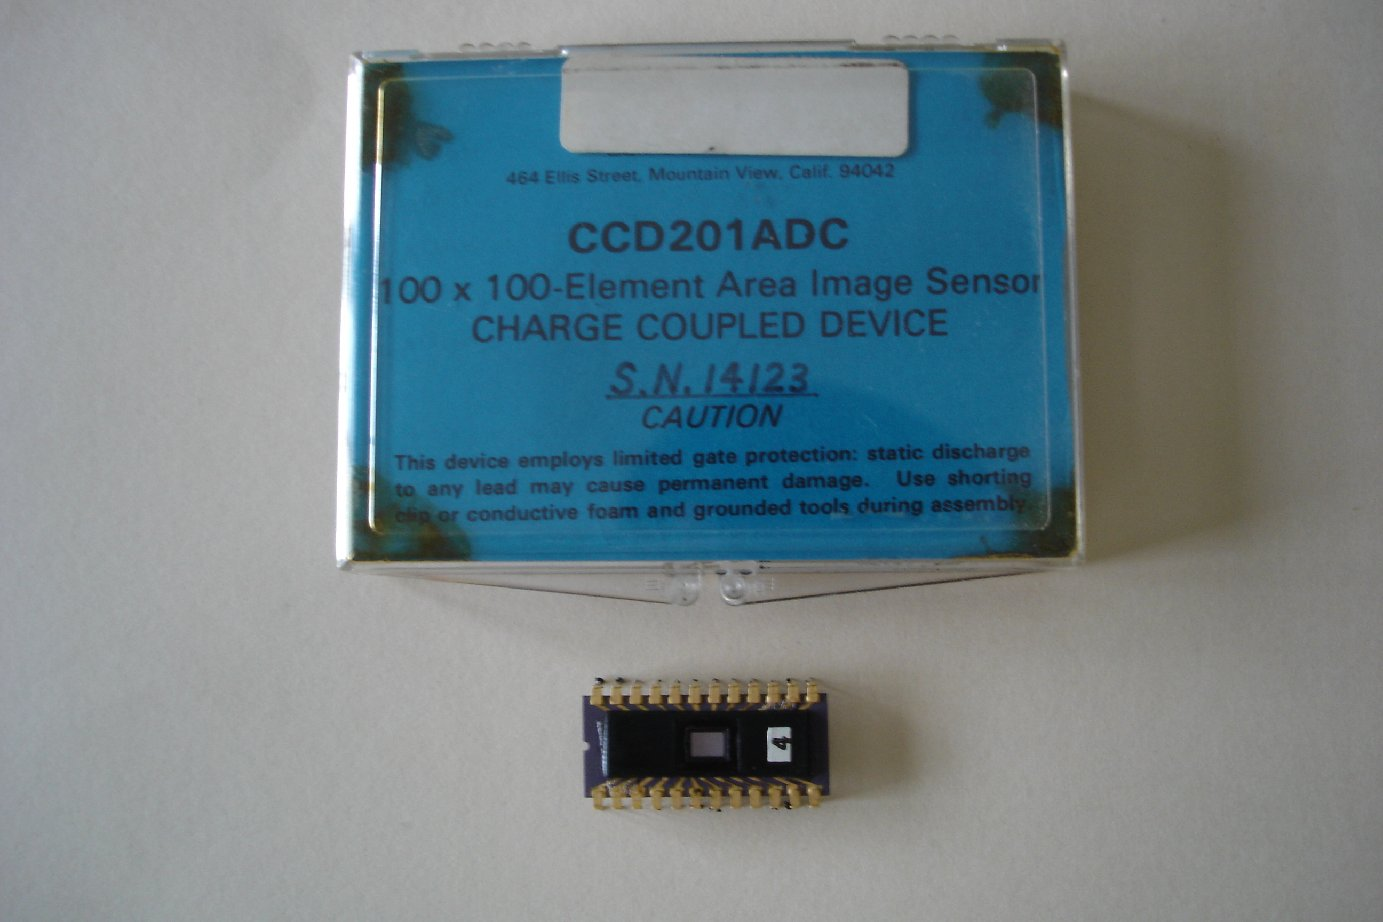 First commercial CCD Fairchild 10-0 x 100 pixel CCD